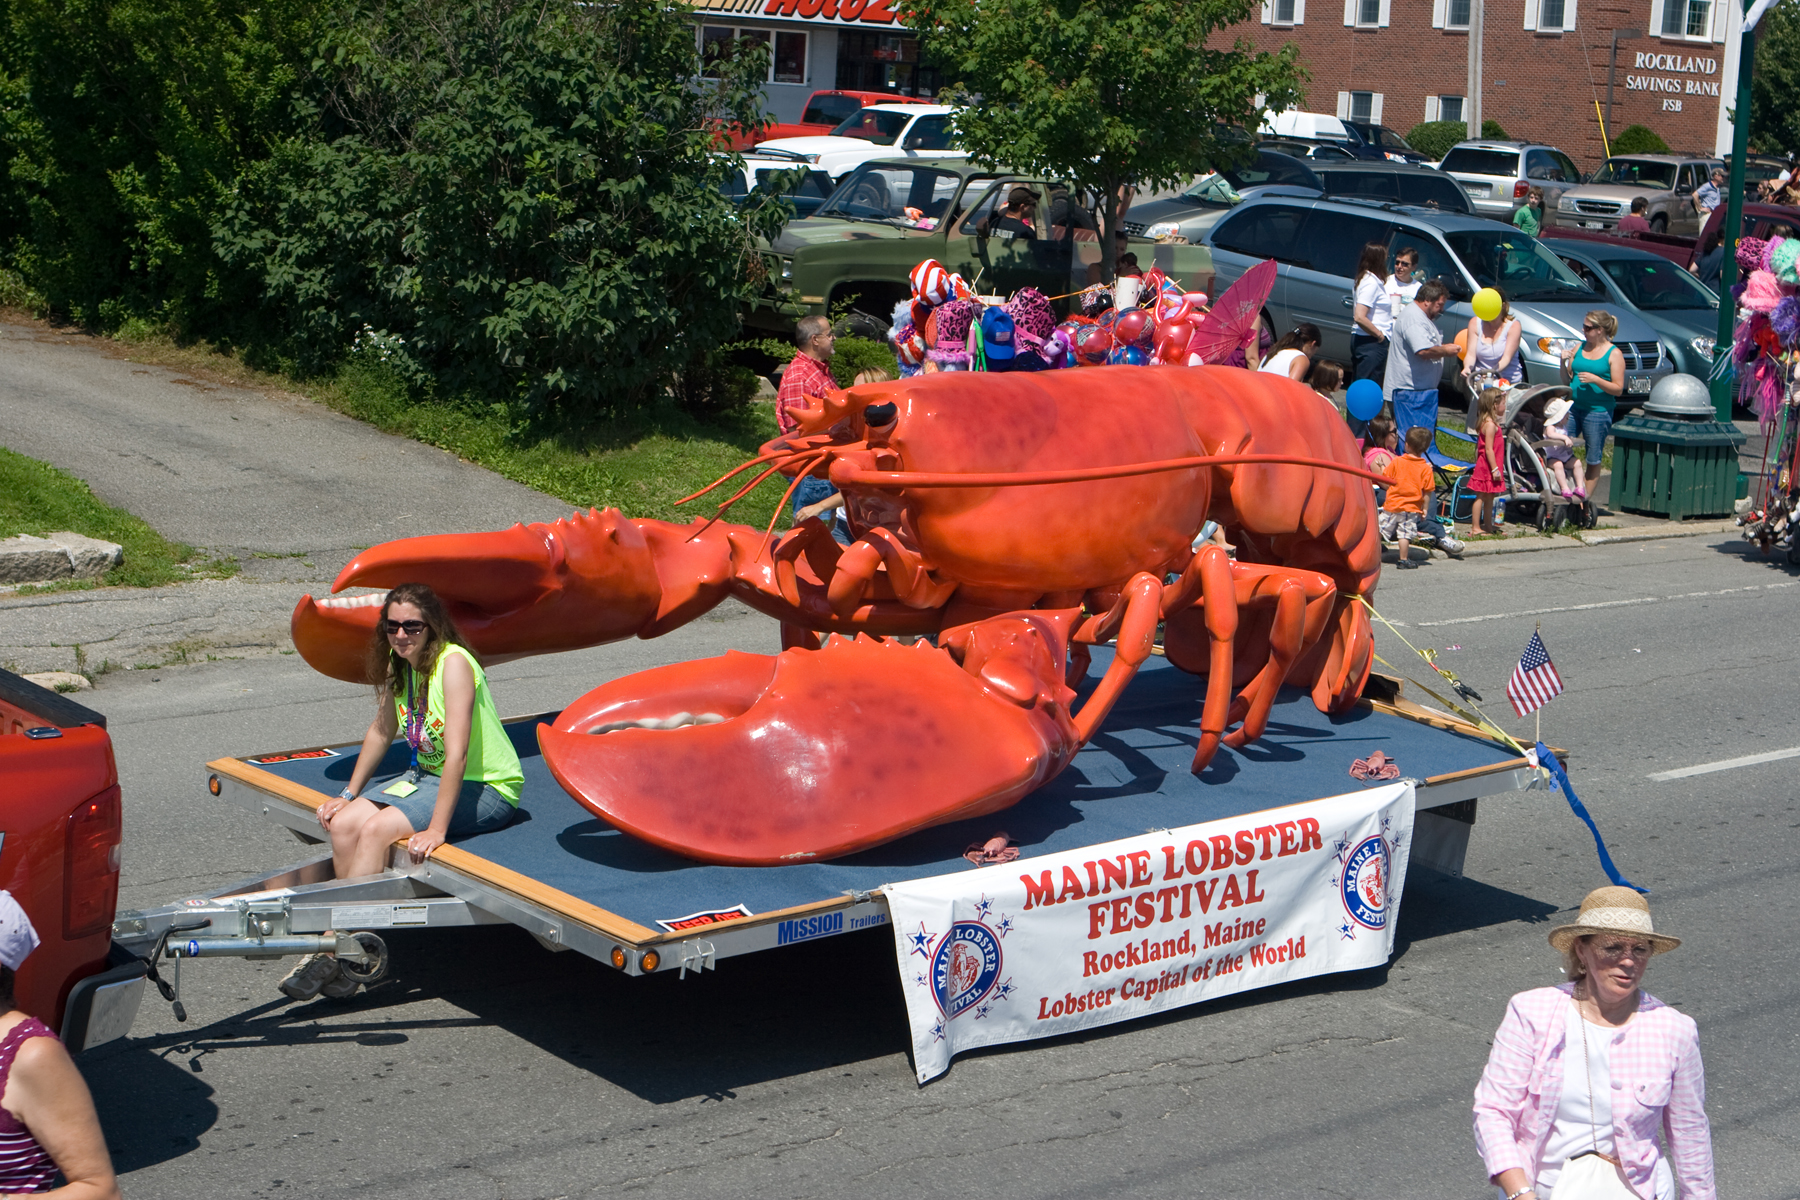 Maine Lobster Festival 2016, Aug. 3-7, in Rockland, Maine